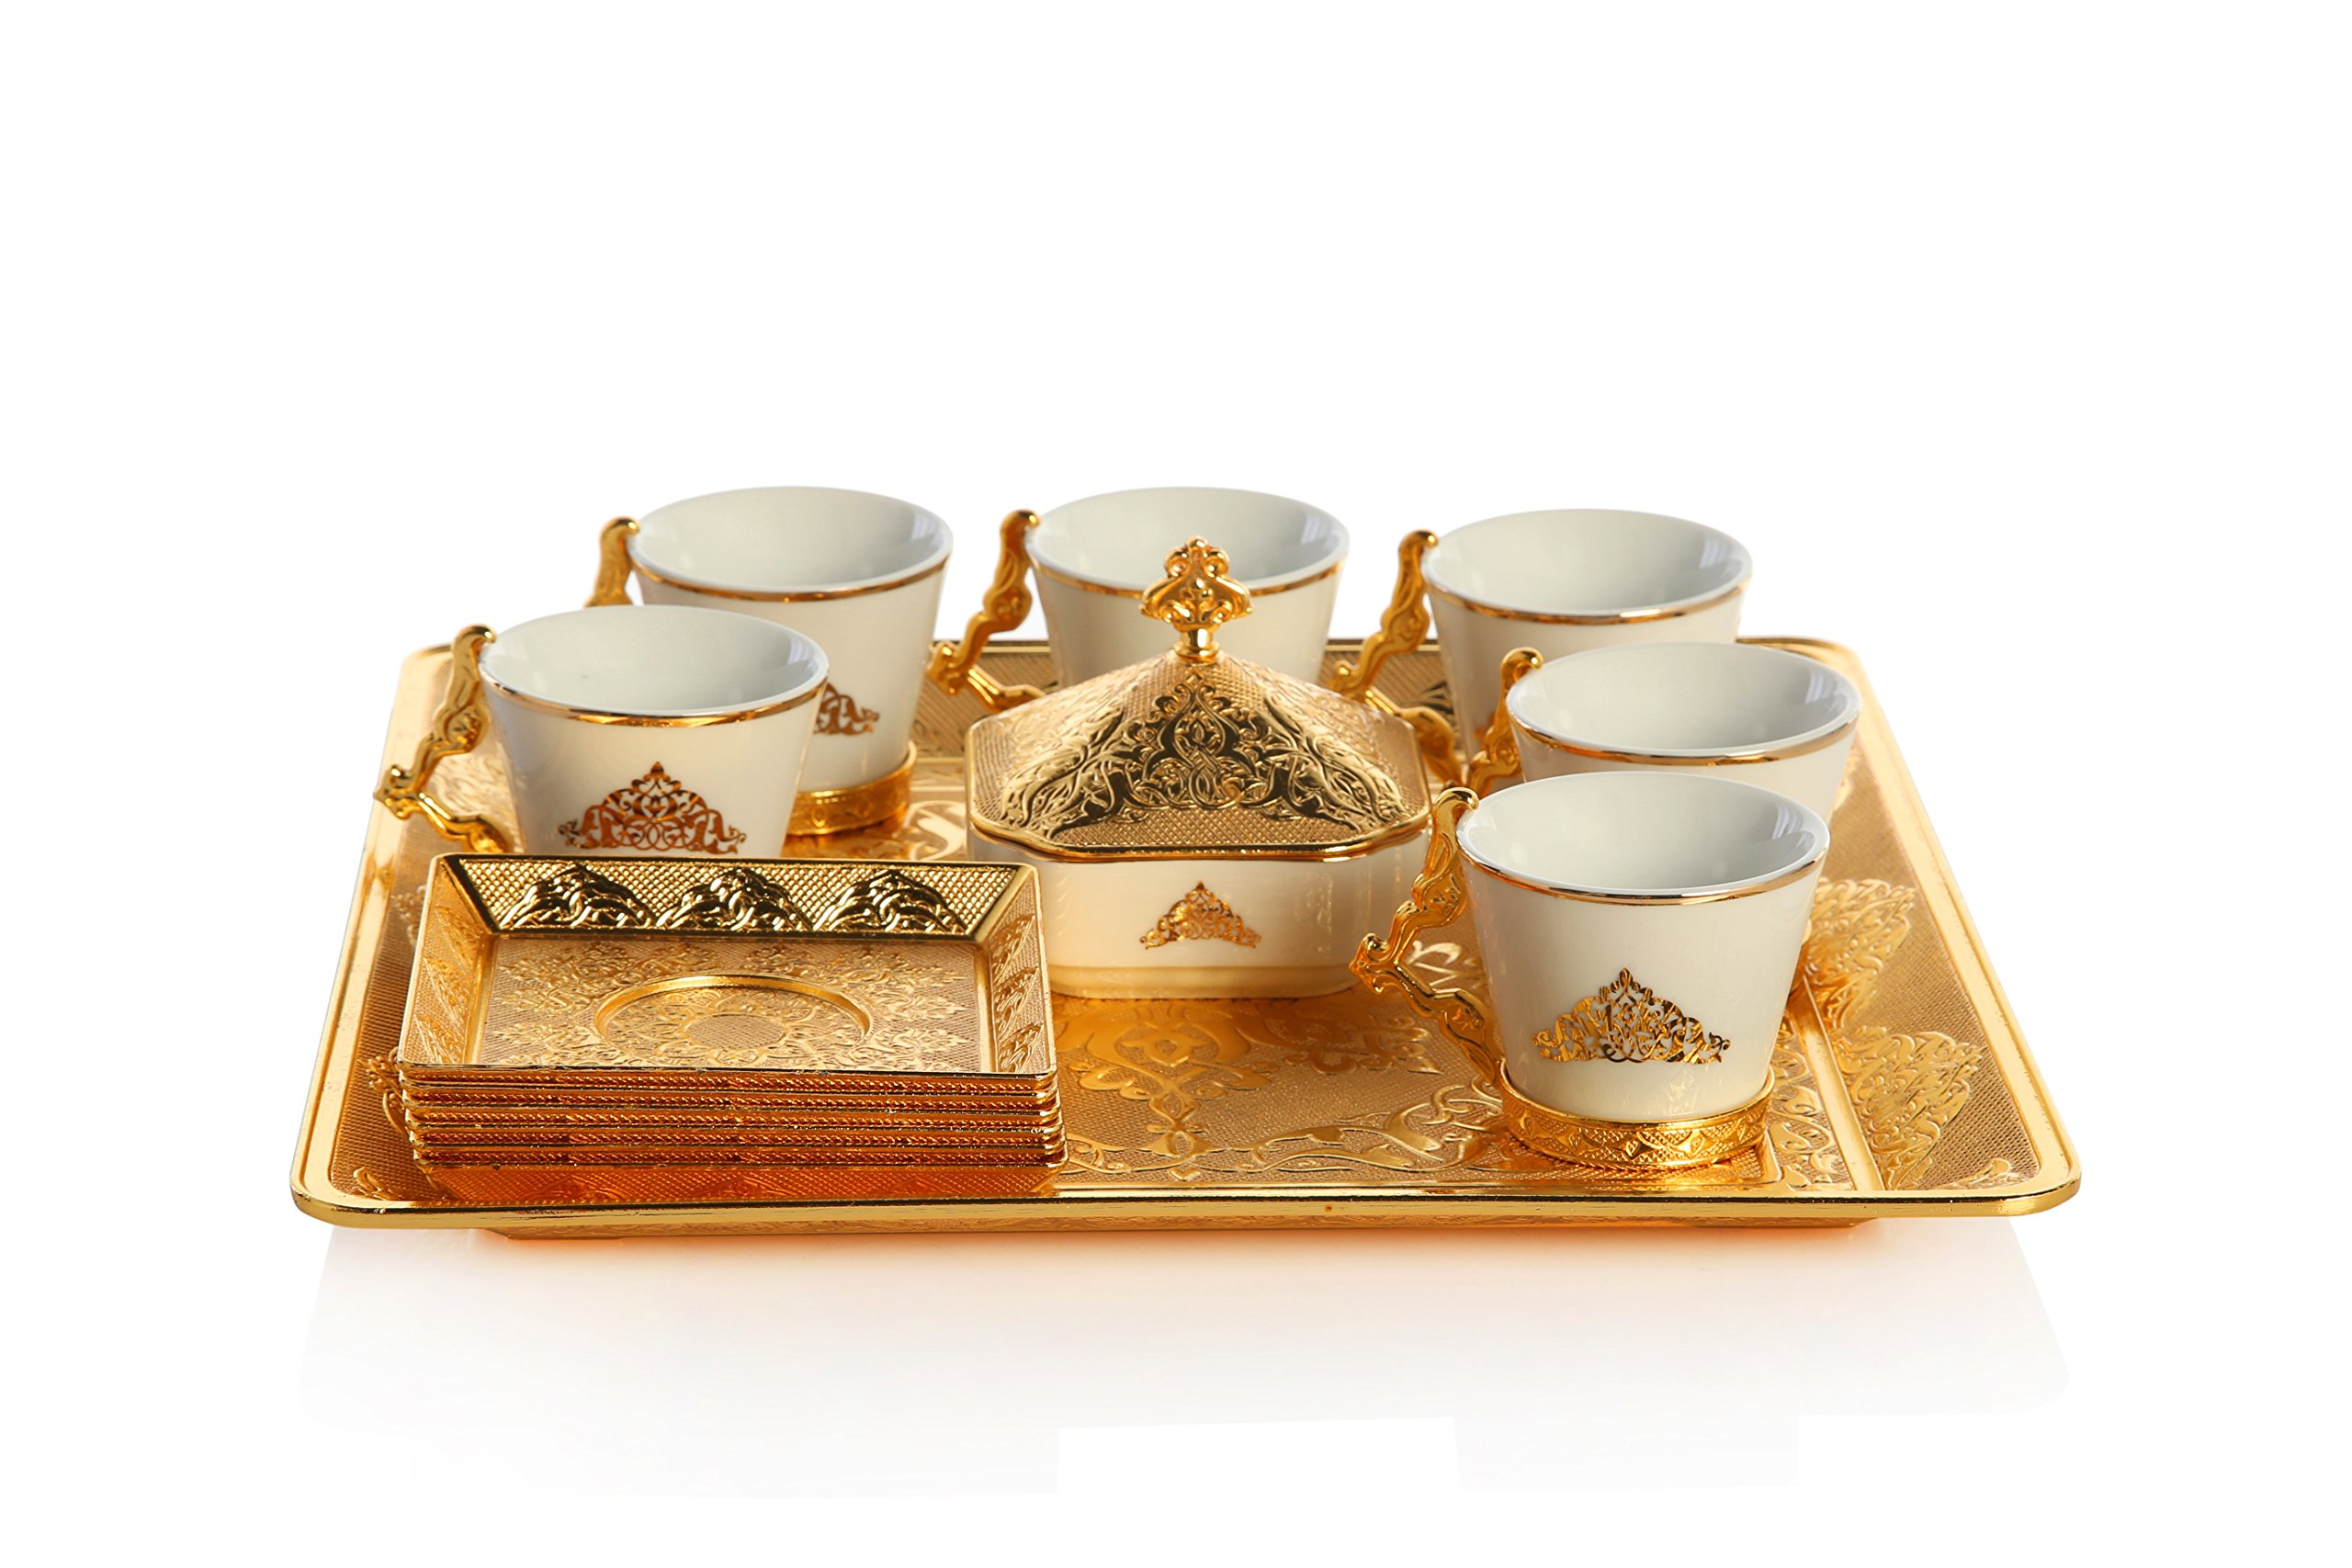 Gold Case Gold Plated Turkish, Arabic, Greek and Espresso Coffee Set for 6 - Made in Turkey - 21 Pieced Set for 6, Gold by Gold Case (Image #1)